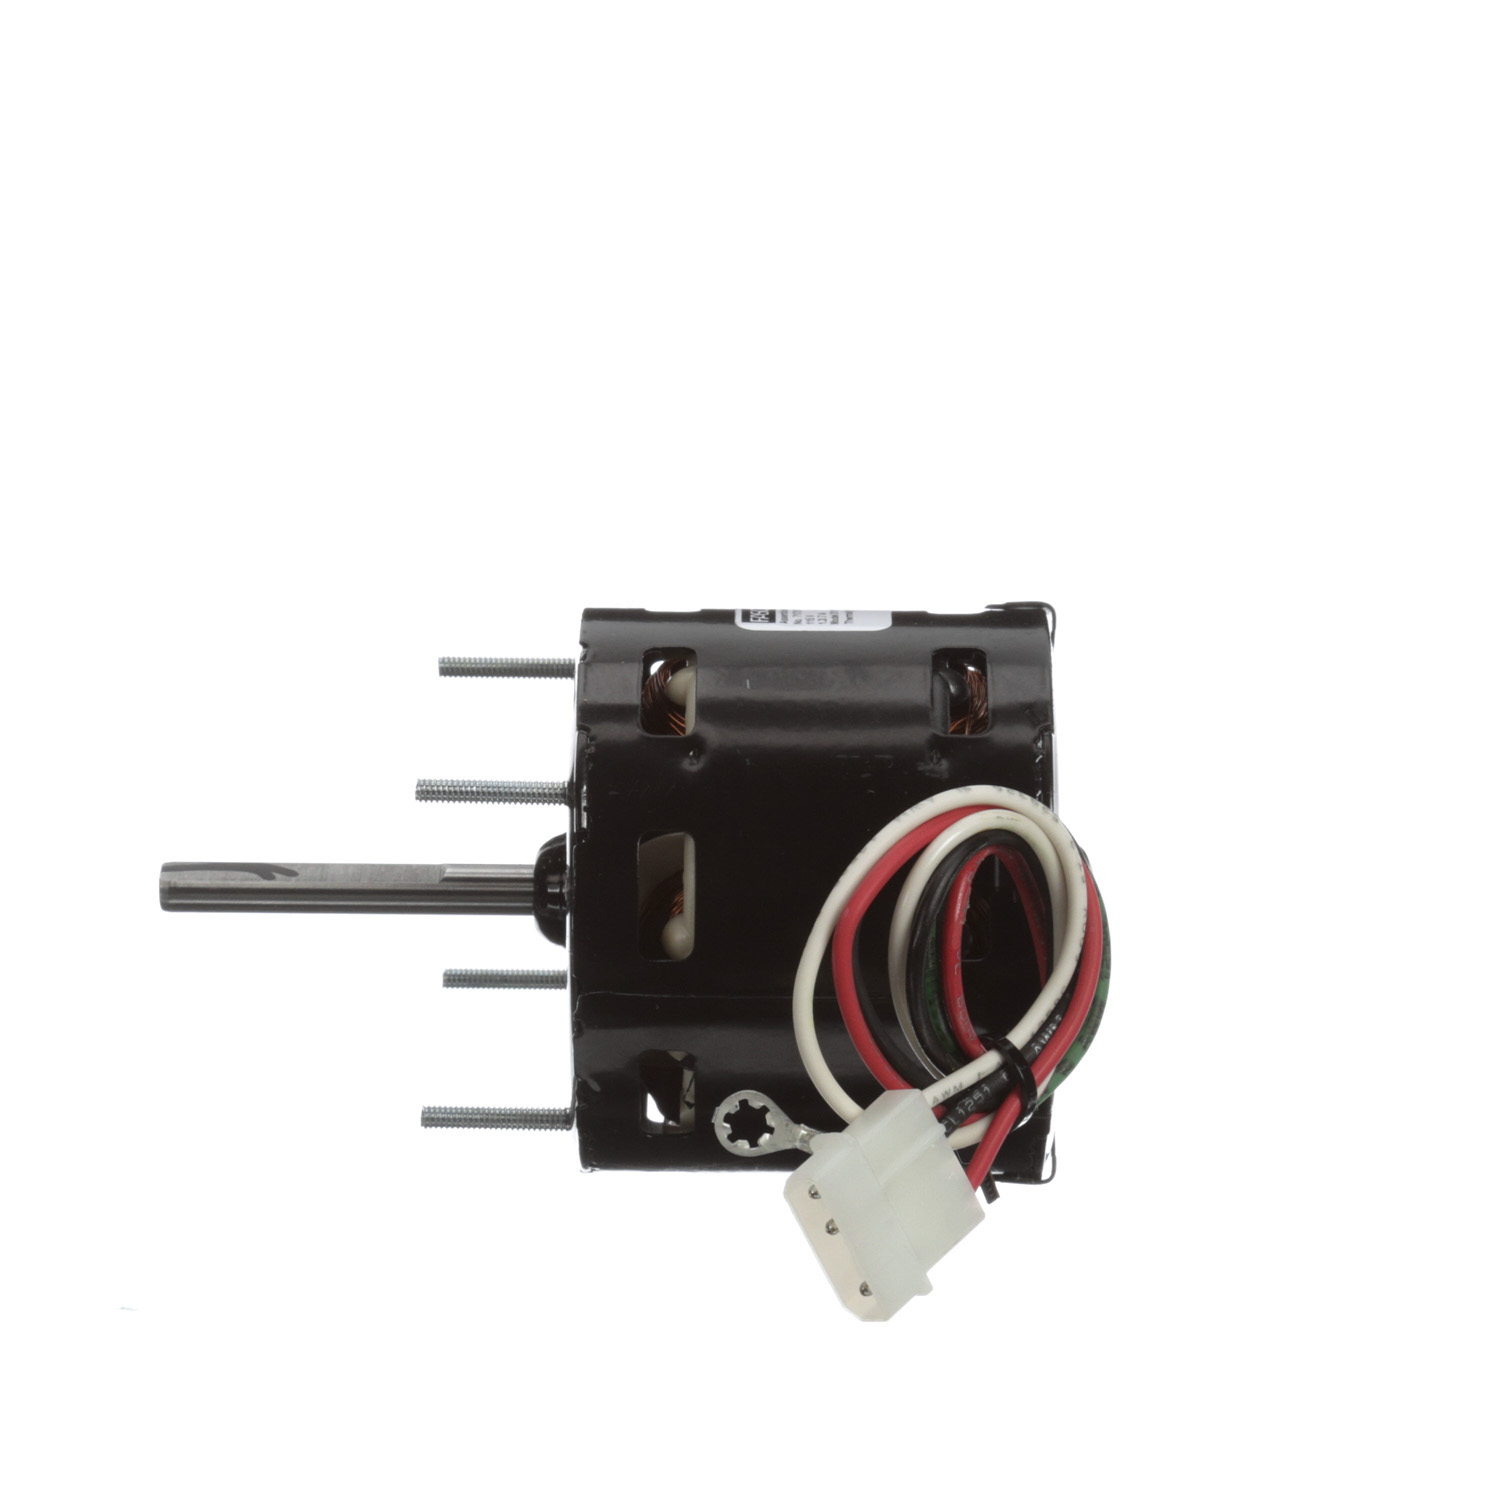 Direct Replacement For Loren Cook 115 Volts 1550/900 RPM 1 ... on